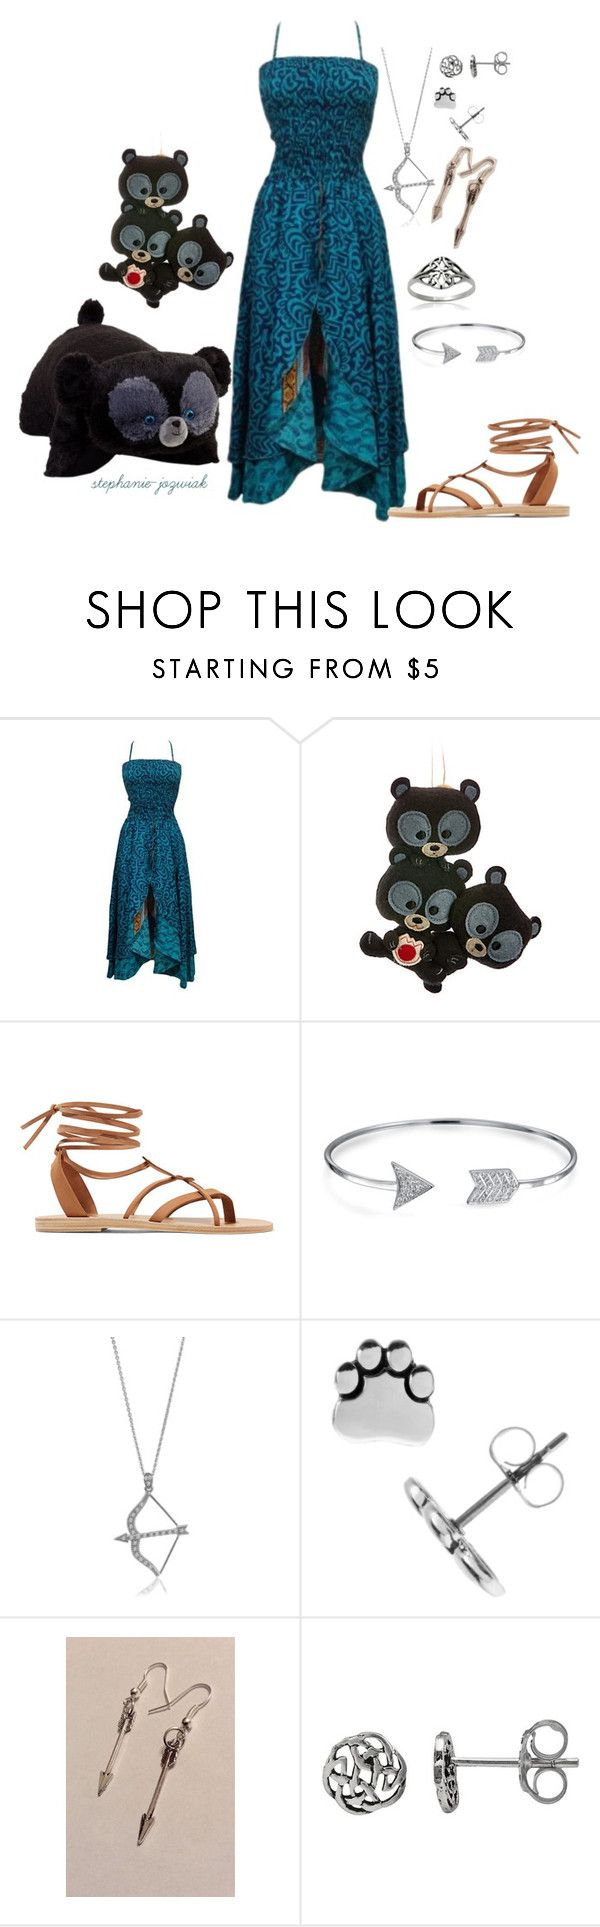 """""""Lynessa's Outfit for Ethan's Baby Shower"""" by stephanie-jozwiak ❤ liked on Polyvore featuring Valia Gabriel, Bling Jewelry, BERRICLE, Journee Collection and Itsy Bitsy"""